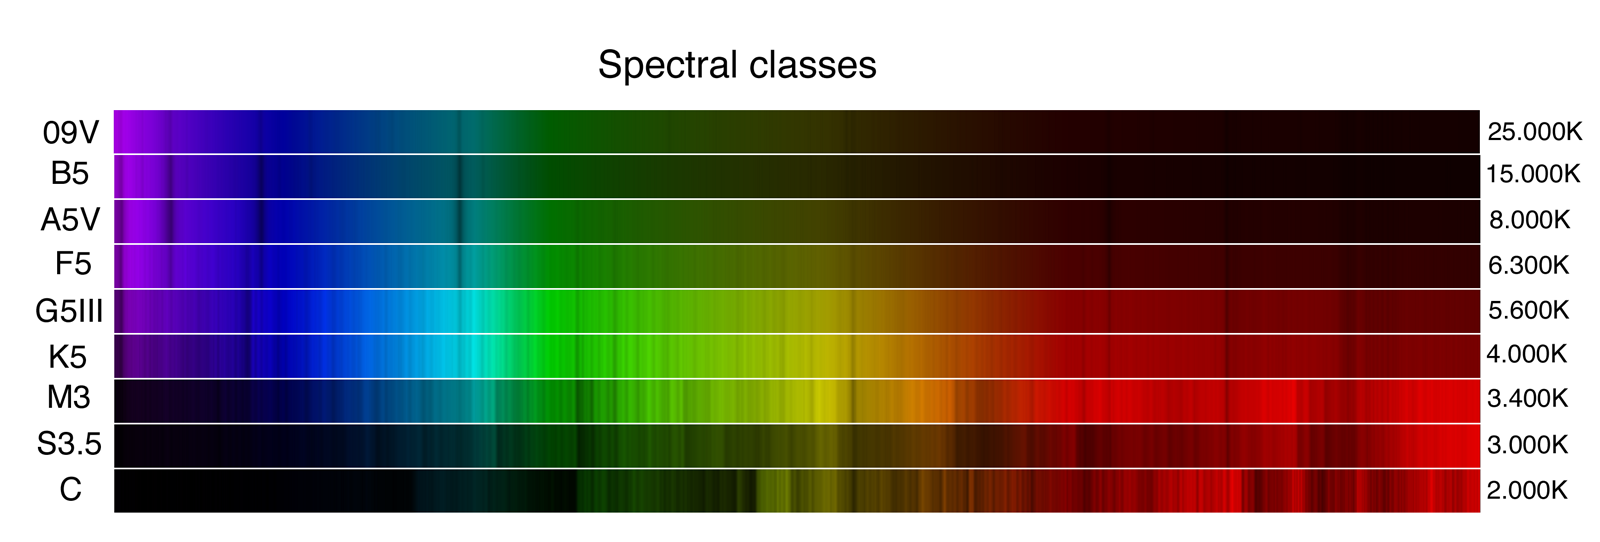 Classes_spectralesWeb.png.a10b94b471f7e2b8f06dc2c690e5dccf.png